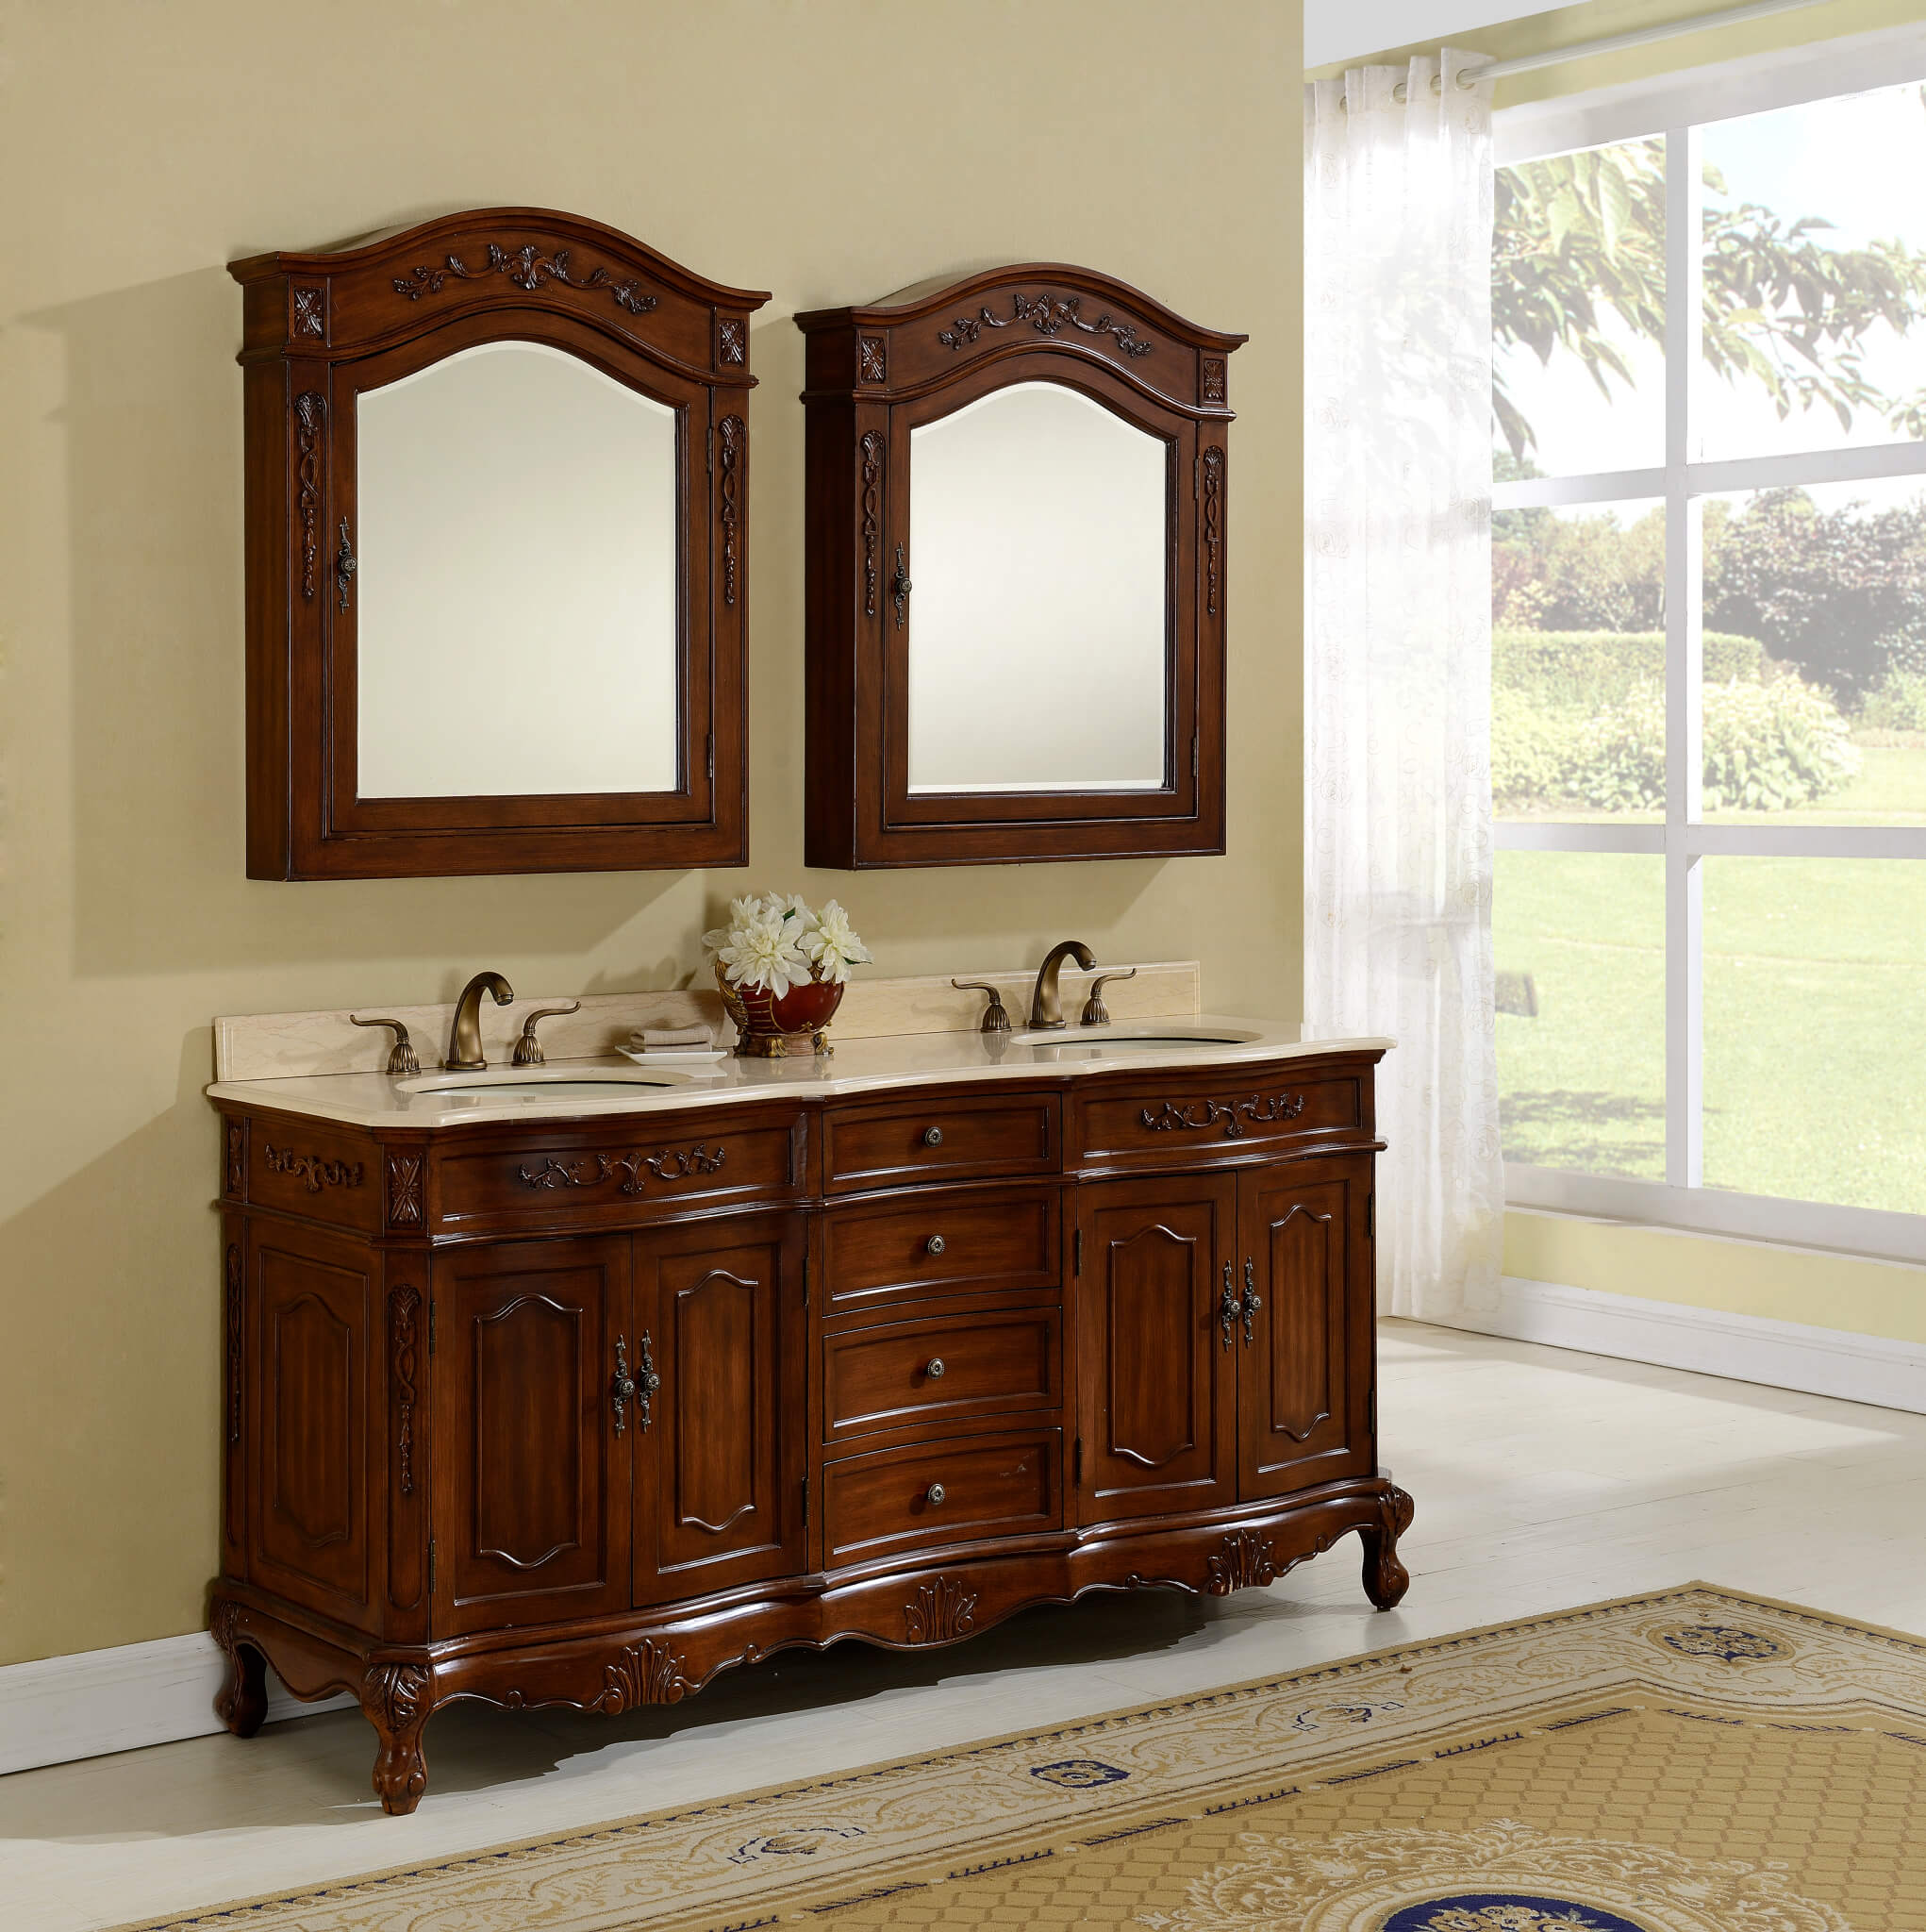 72″ Kensington Teak Bathroom Vanity